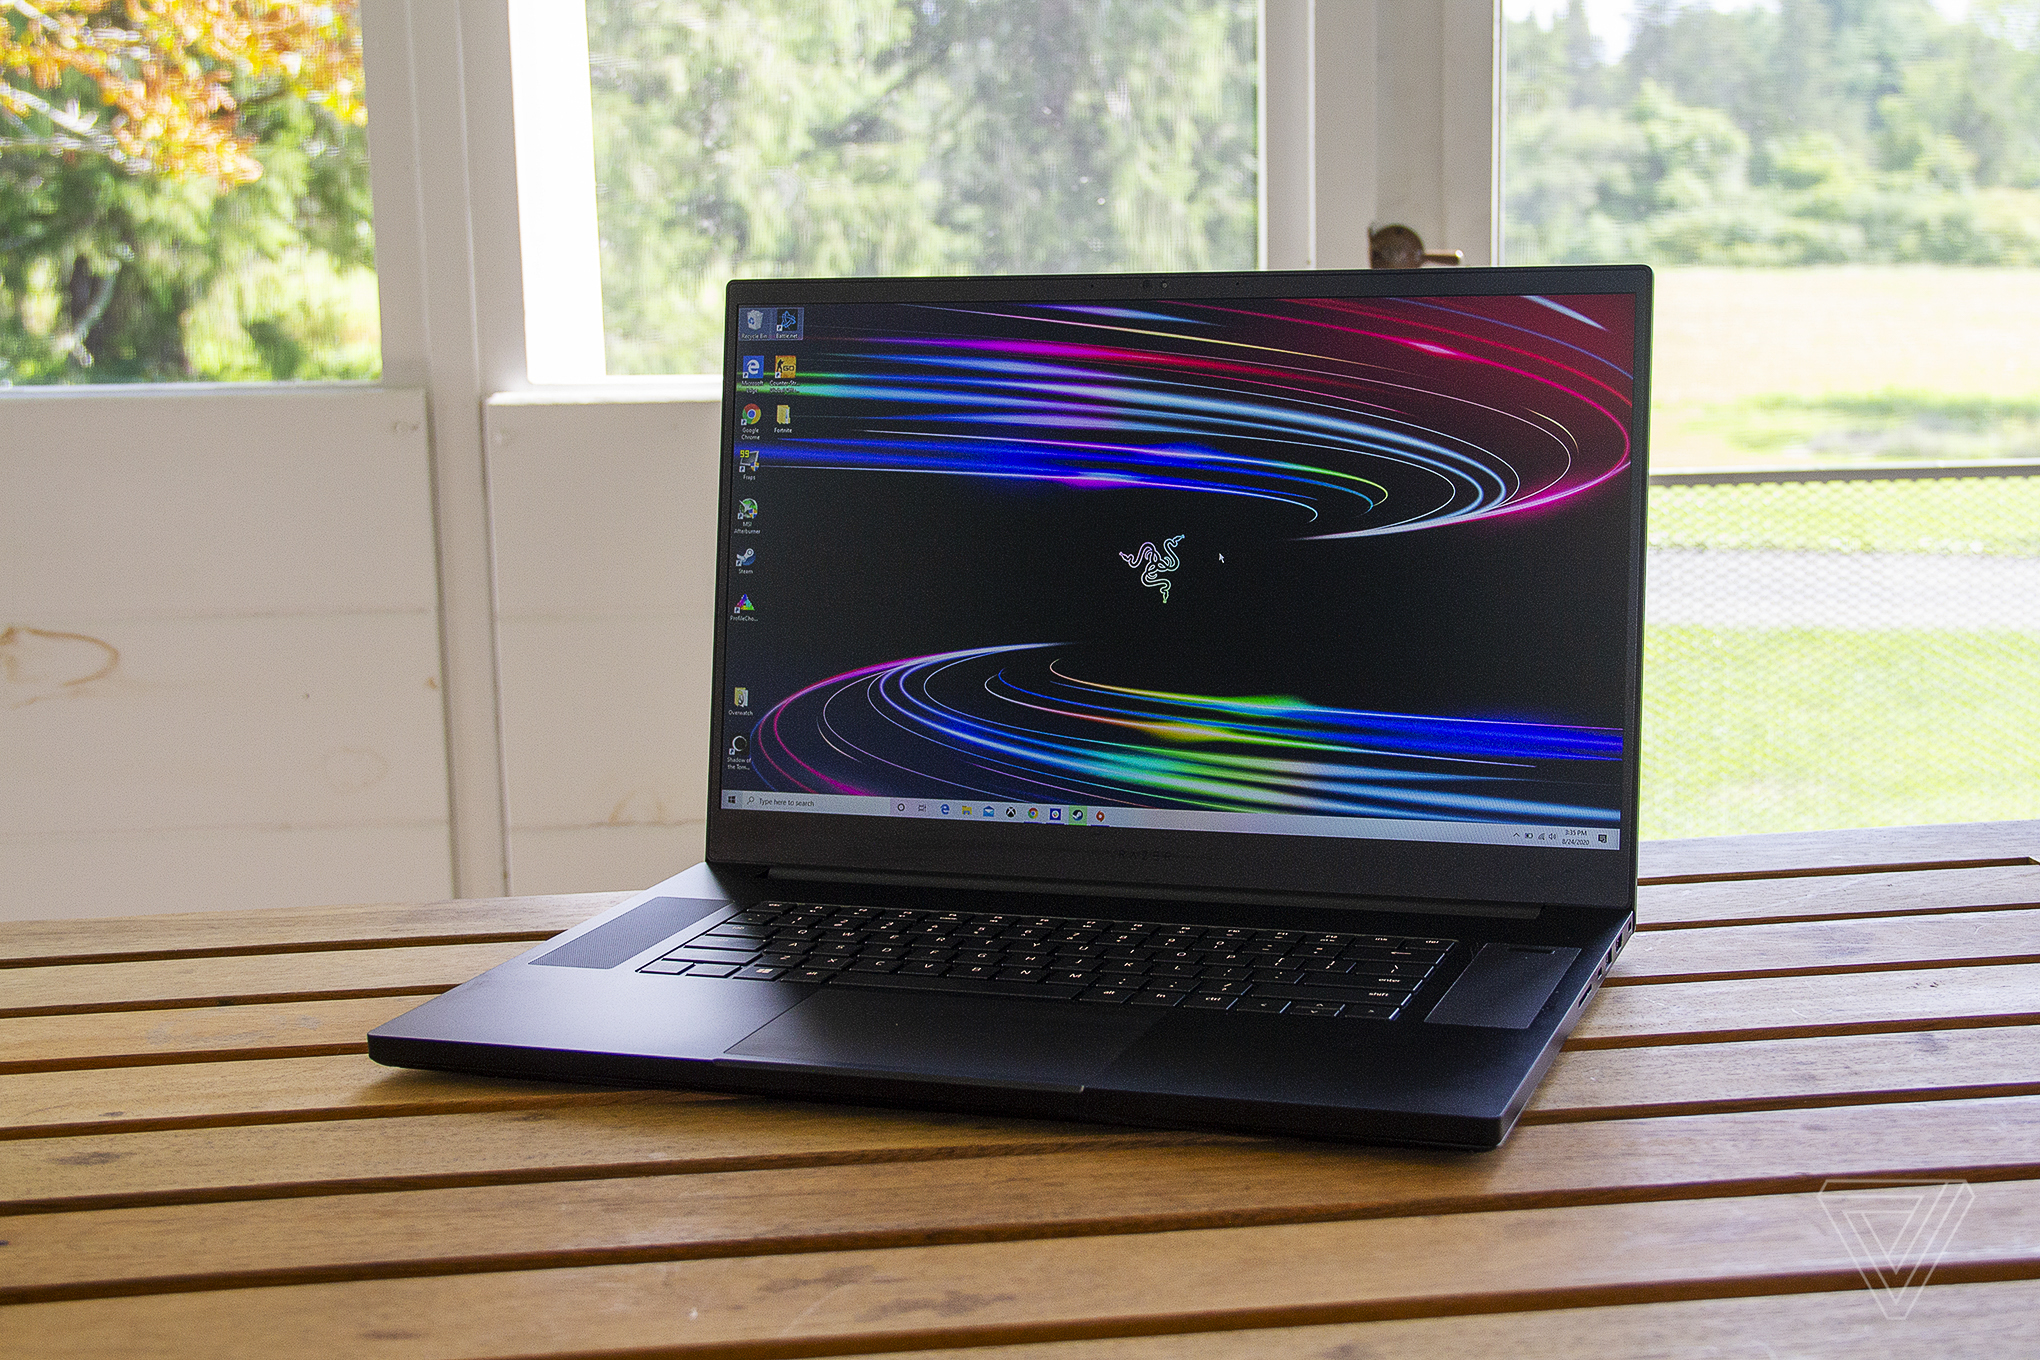 The Razer Blade Pro 17 seen from the front, angled slightly to the left.